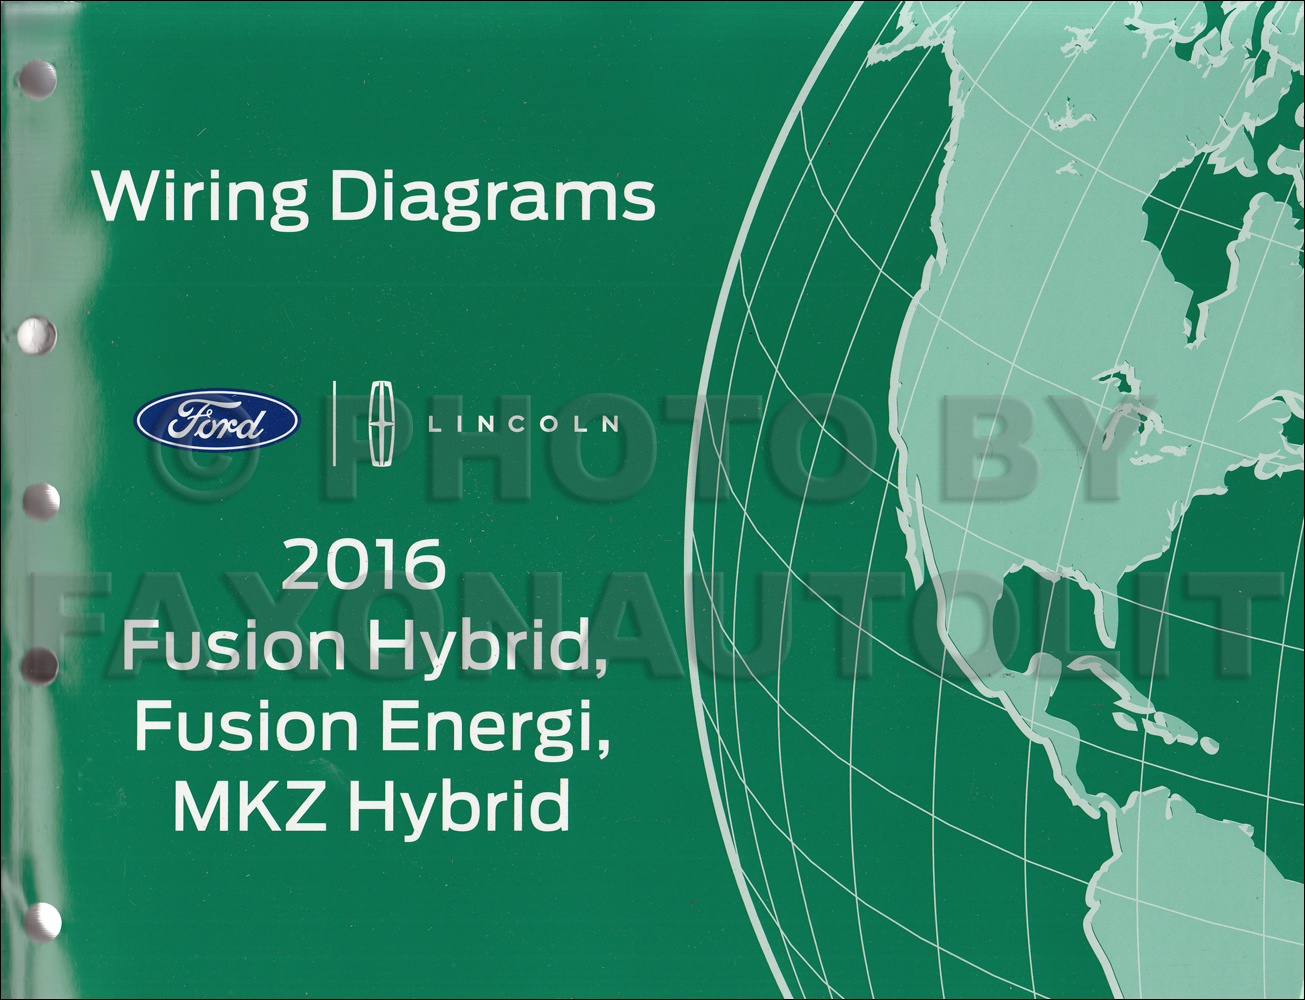 2016FordFusionHybridOWD 2016 ford fusion energi hybrid lincoln mkz hybrid wiring diagram 2012 ford fusion wiring diagram at alyssarenee.co